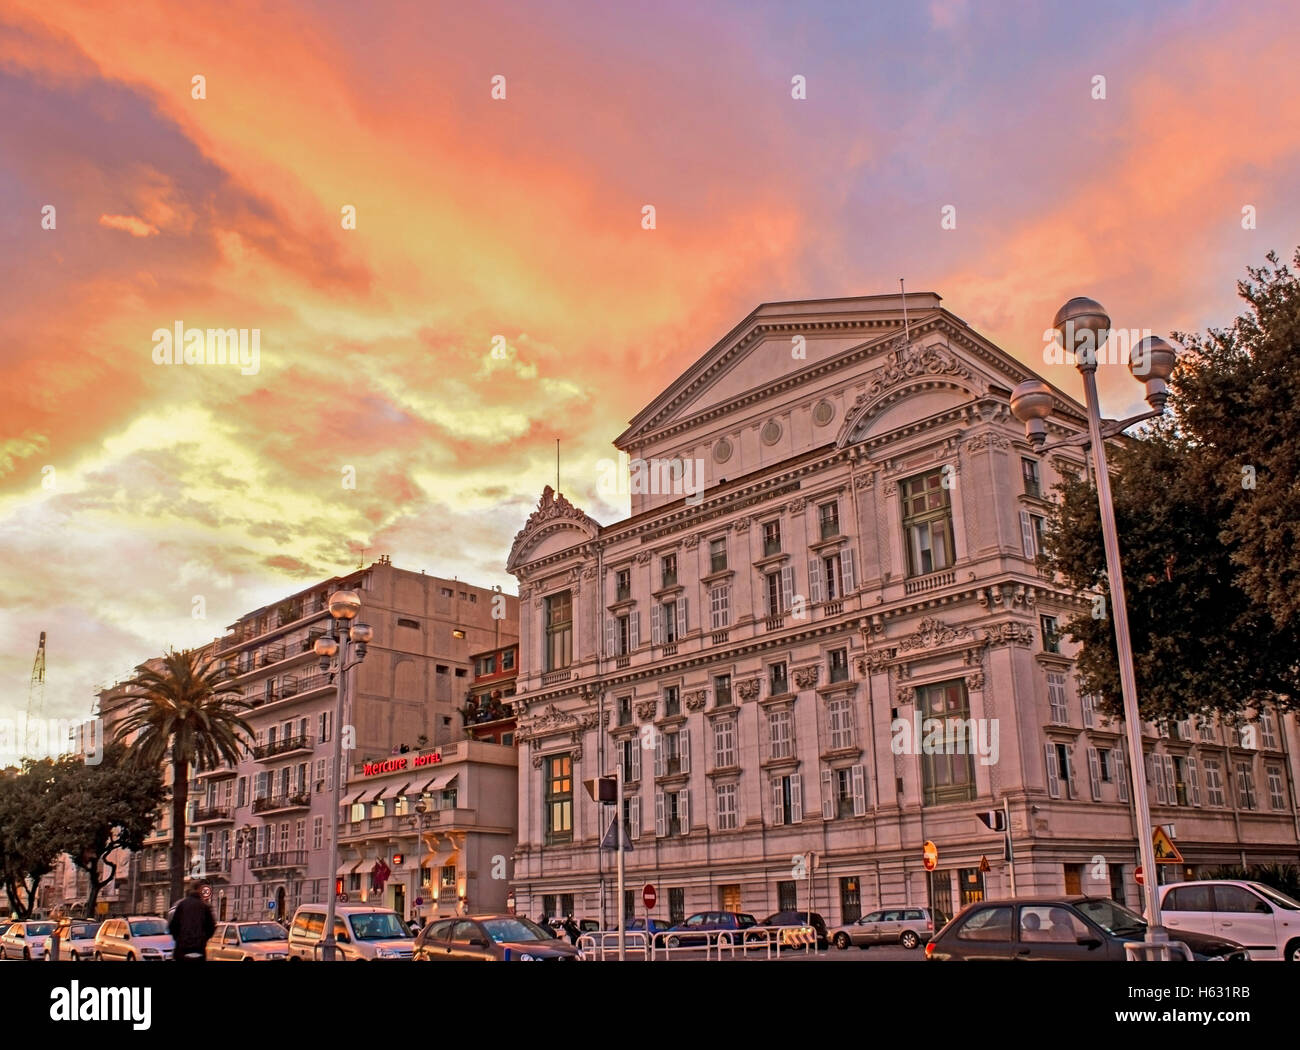 8a83b530c2427 The southern facade of the Opera de Nice located on rue saint francois de  paule in the colours of sunset